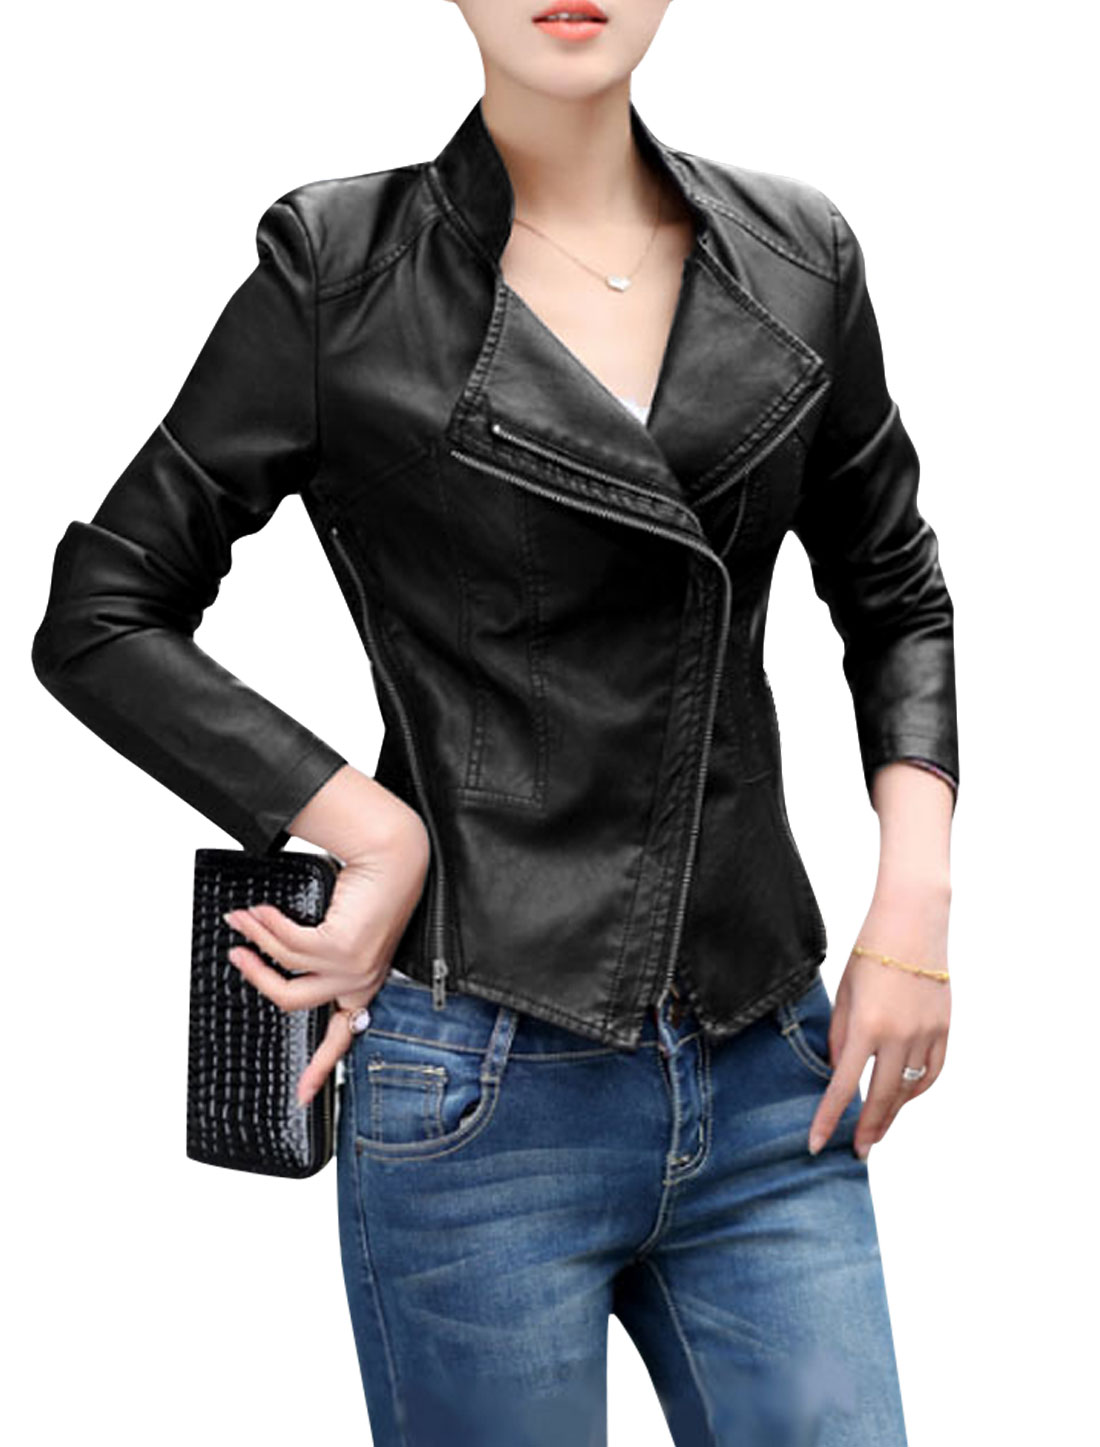 Women Double Zip Up Zippers Decor Slim Imitation Leather Jacket Black M